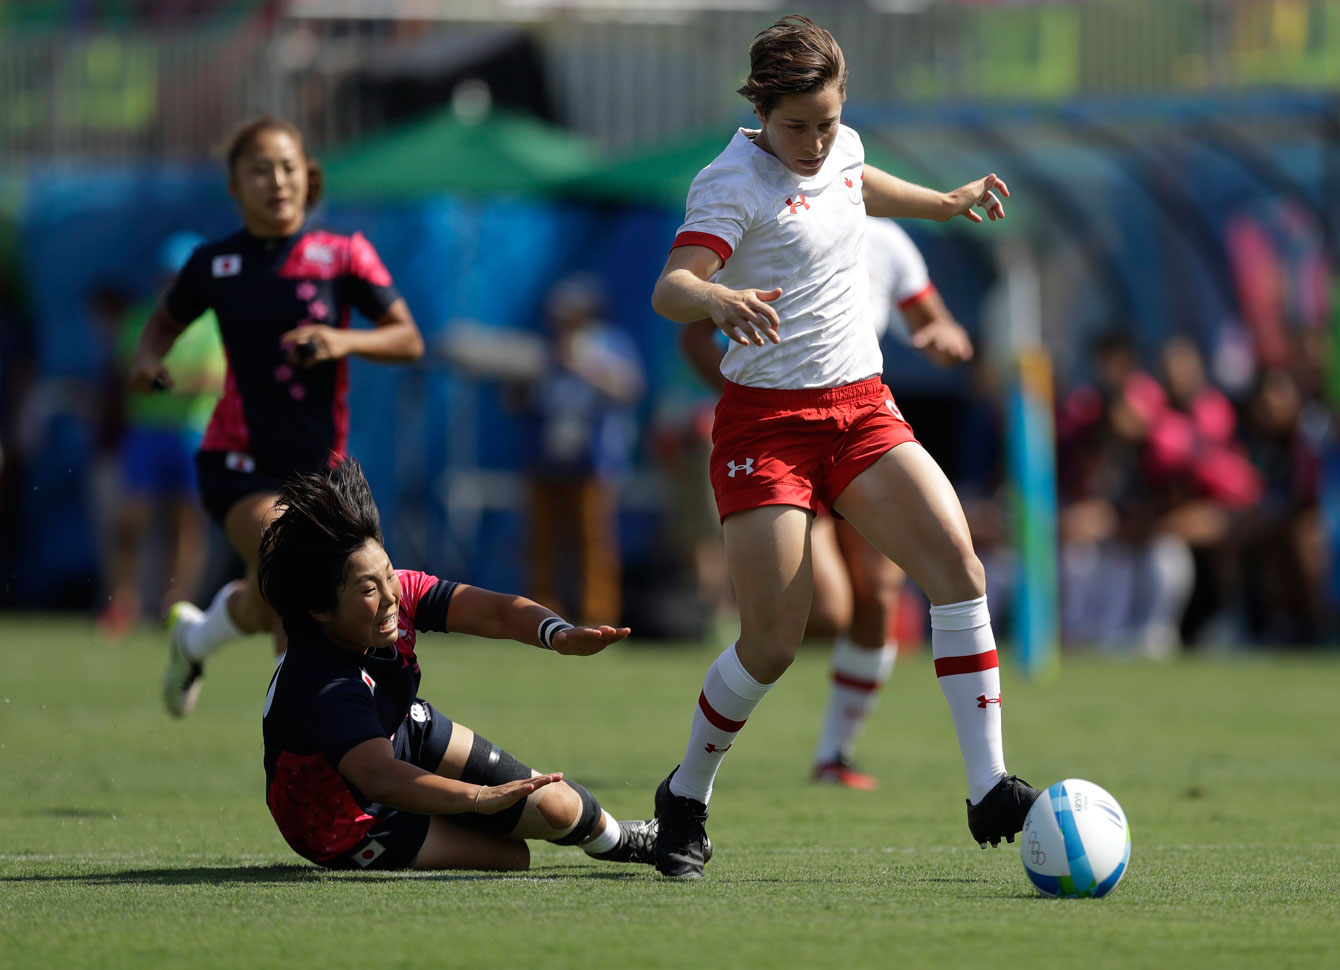 Canada's Ghislaine Landry at Canada's opening women's sevens match at Rio 2016 on Aug. 6, 2016. (AP Photo/Themba Hadebe)